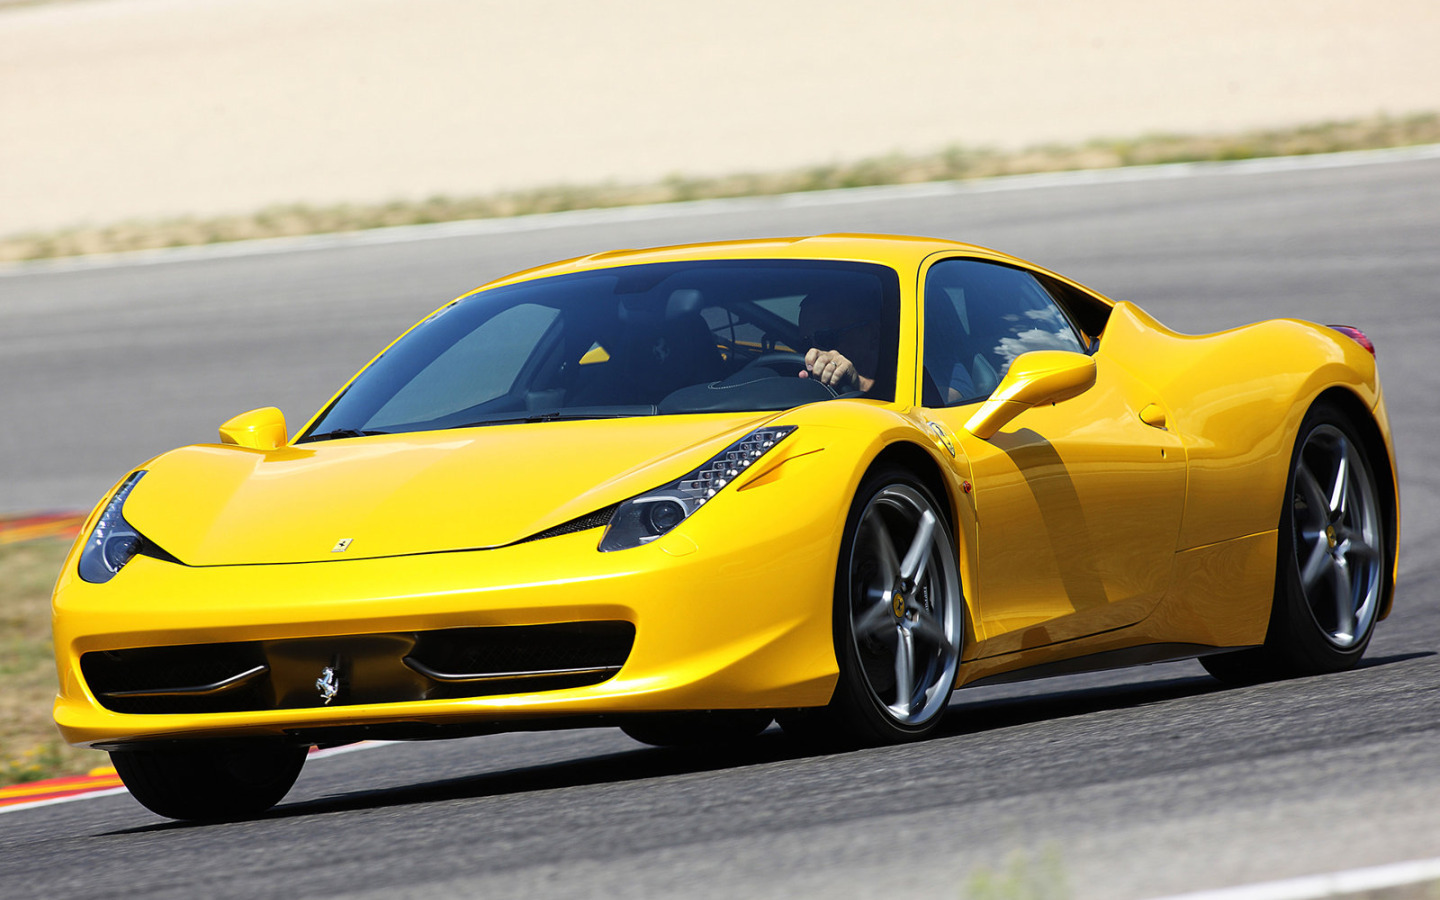 cars Ferrari italia Car HD Wallpaper